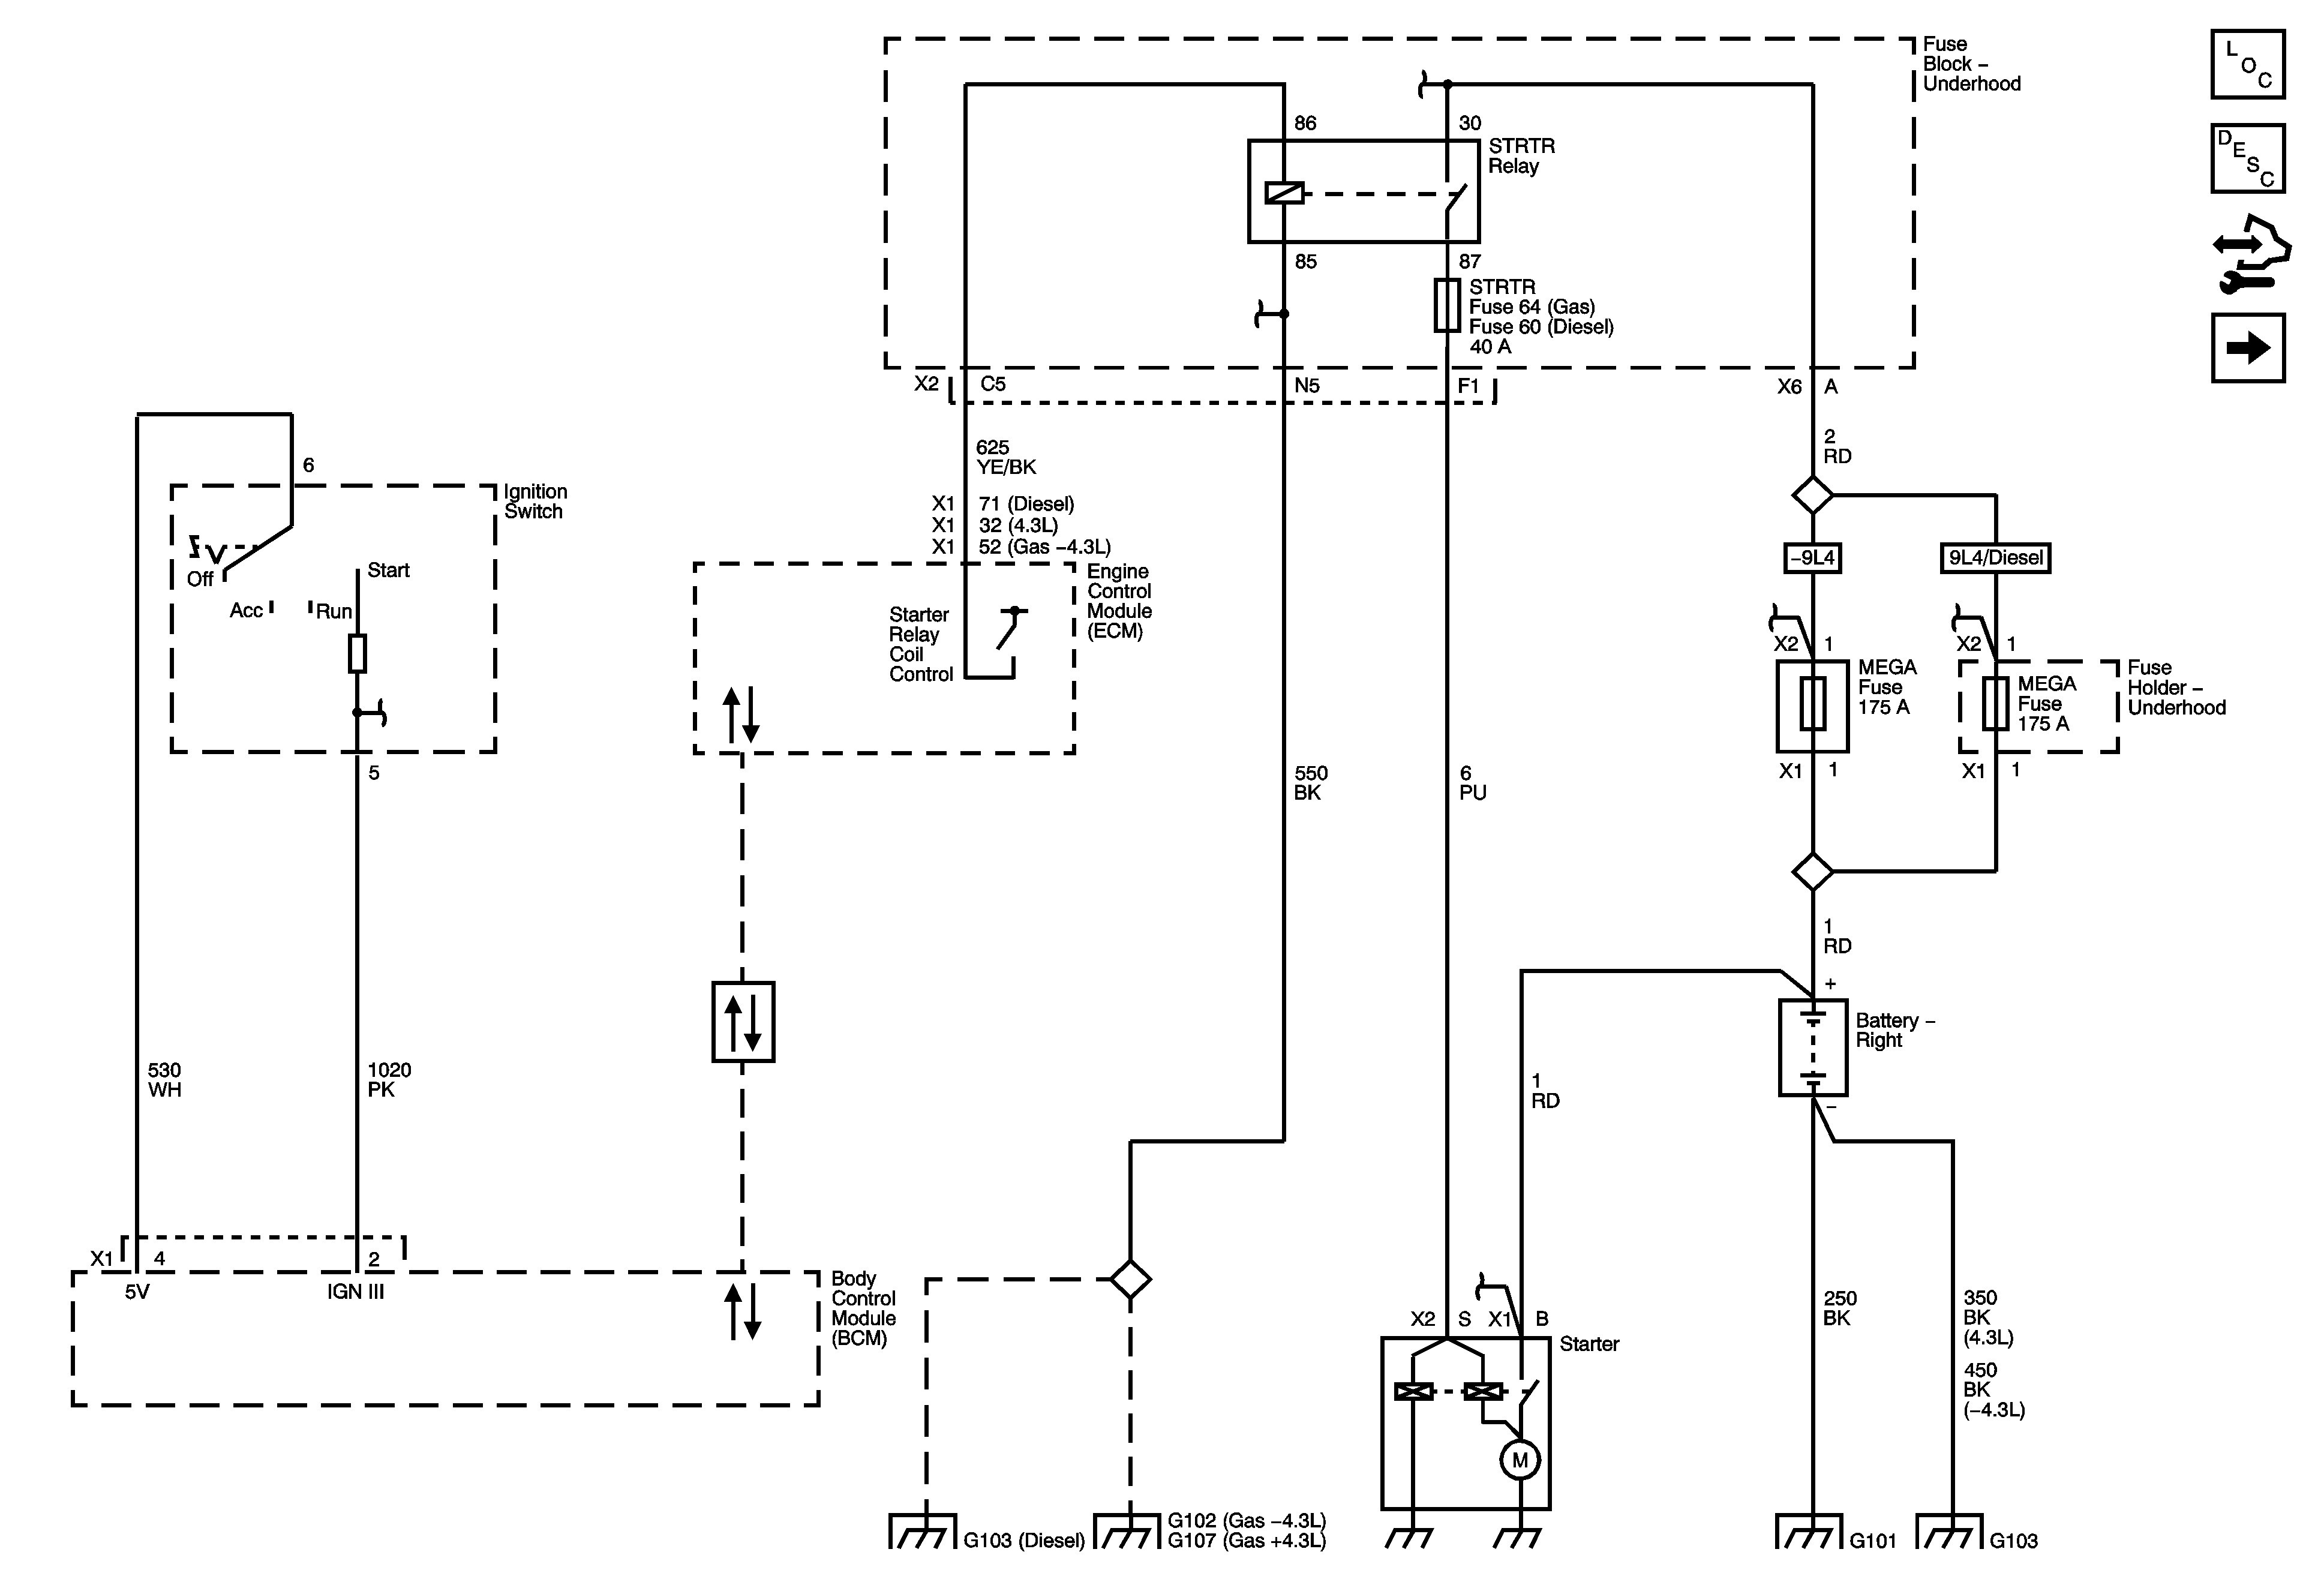 engine starter diagram my wiring diagram rh detoxicrecenze com small engine starter generator wiring diagram vh4d wisconsin engine starter wiring diagram